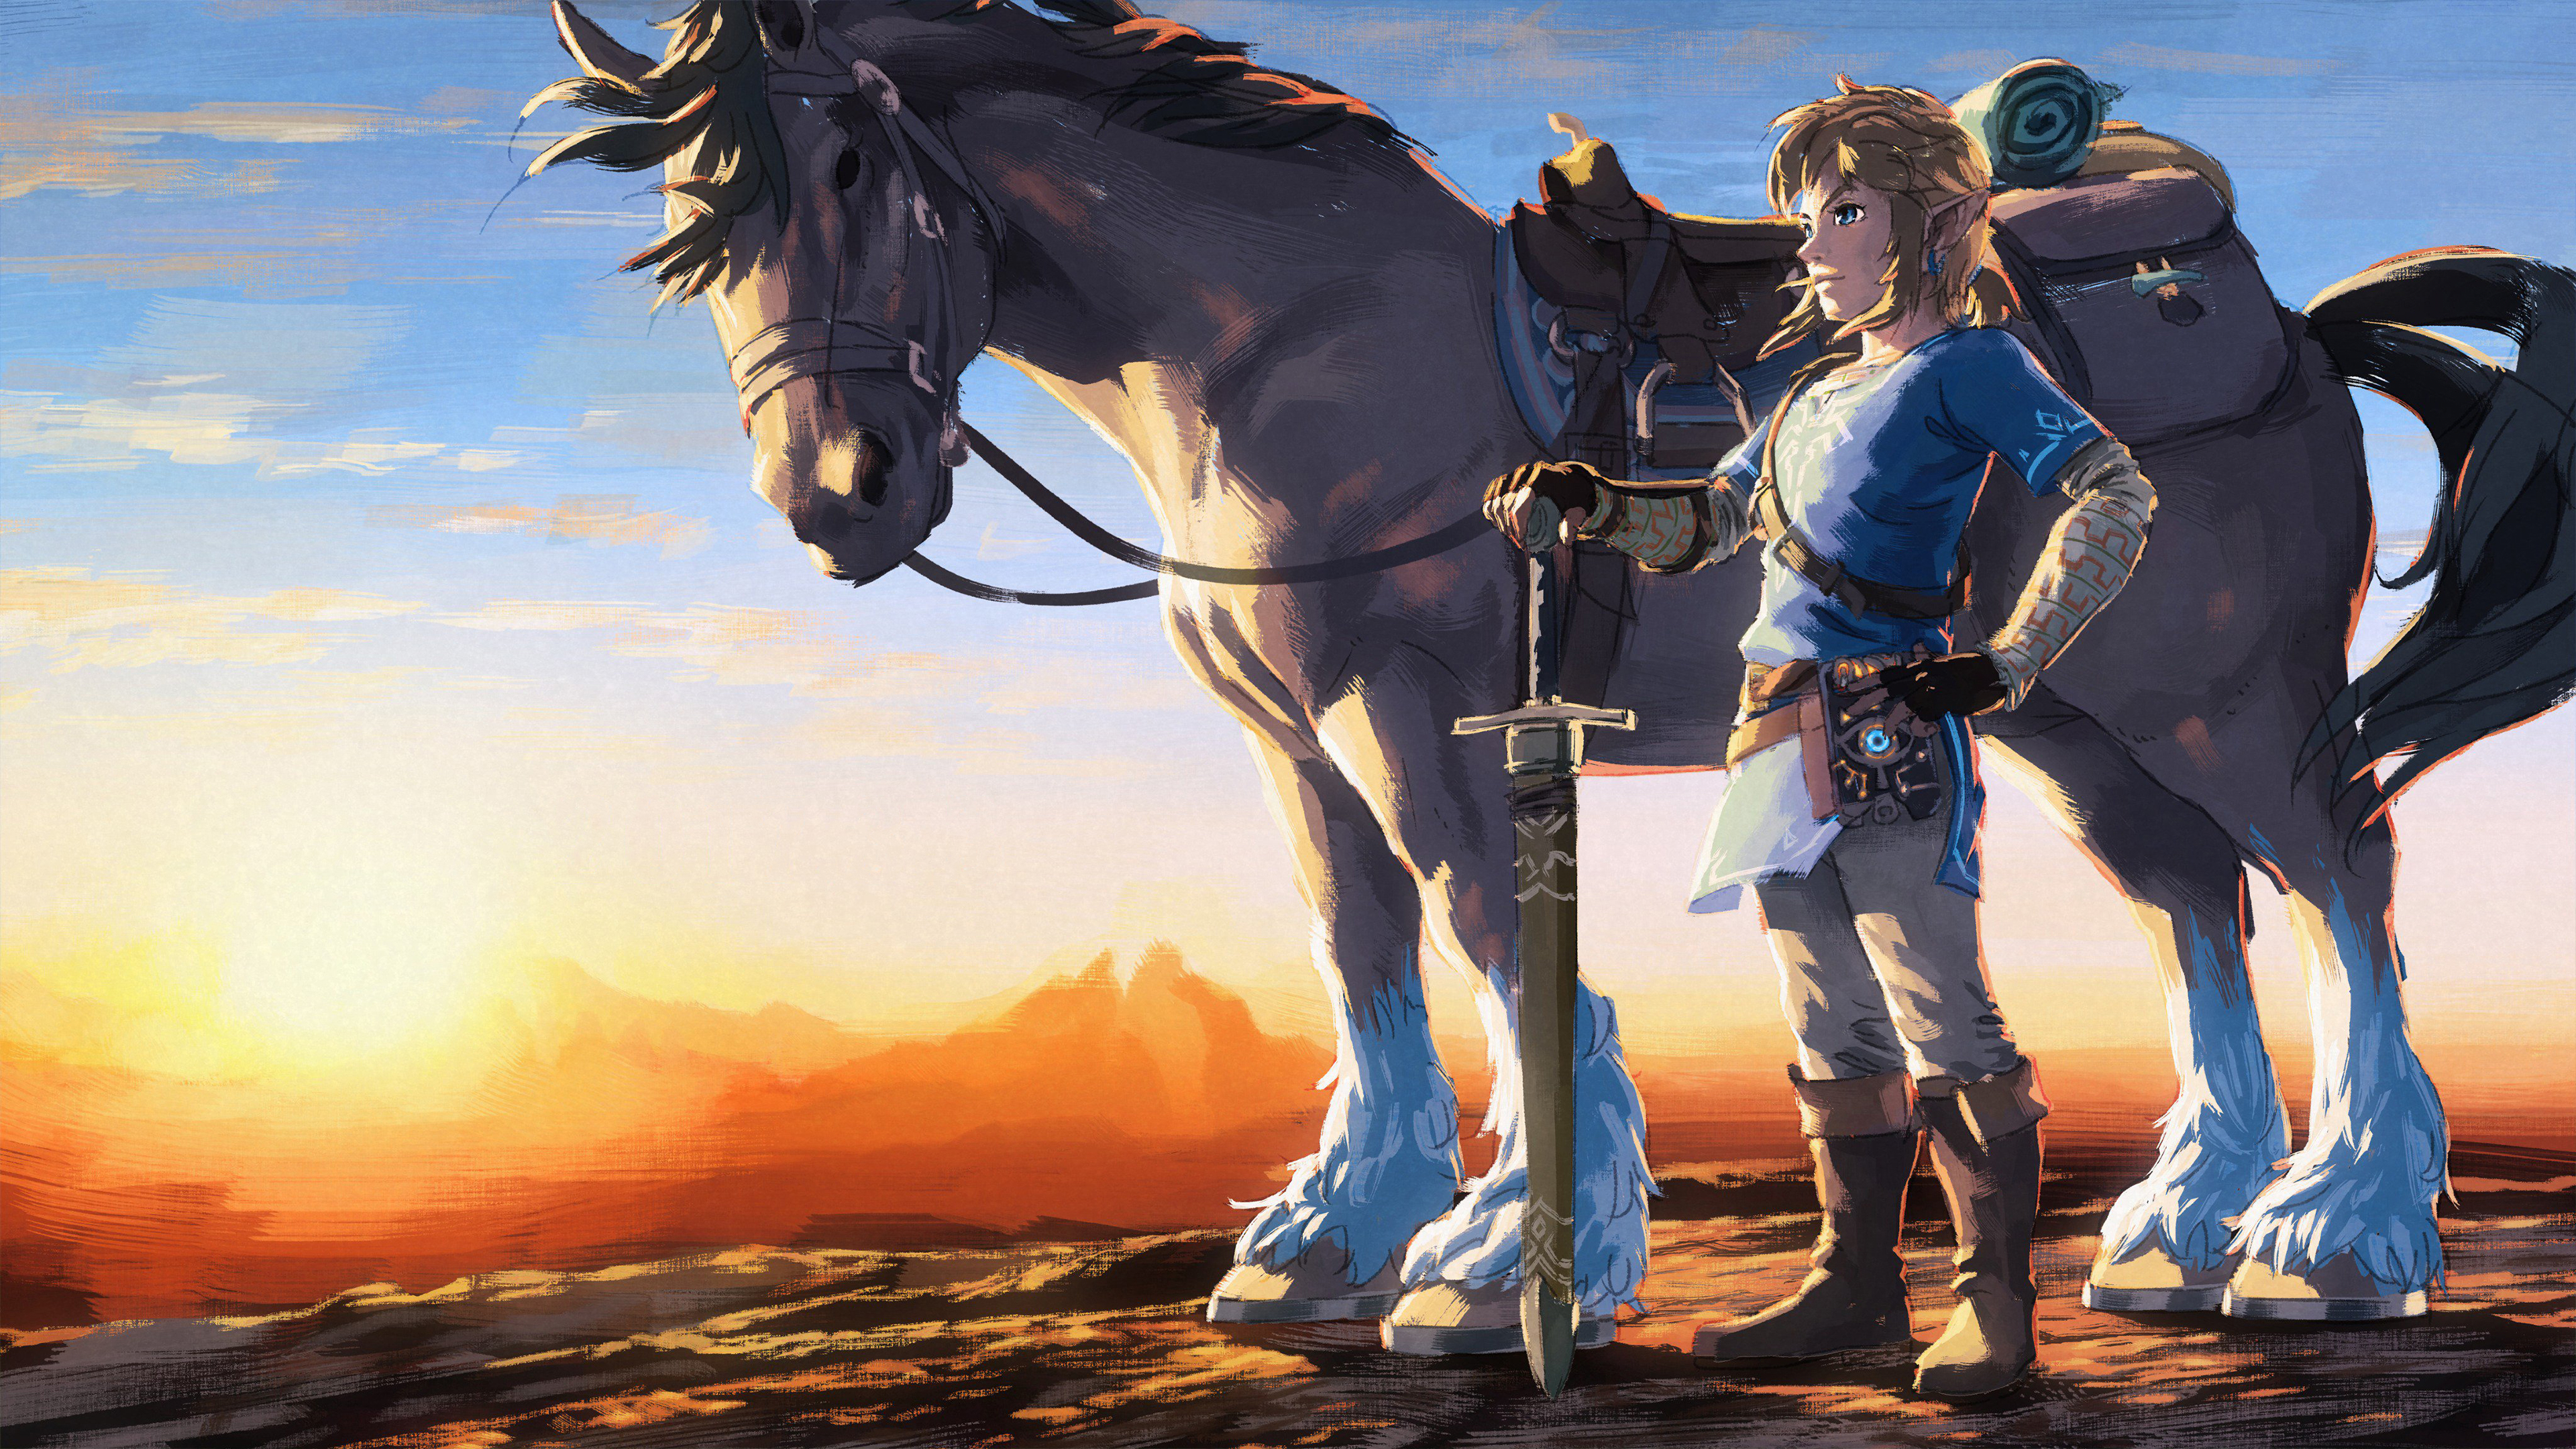 Zelda Breath Of The Wild Wallpaper 4k: 1 Year Anniversary The Legend Of Zelda Breath Of The Wild